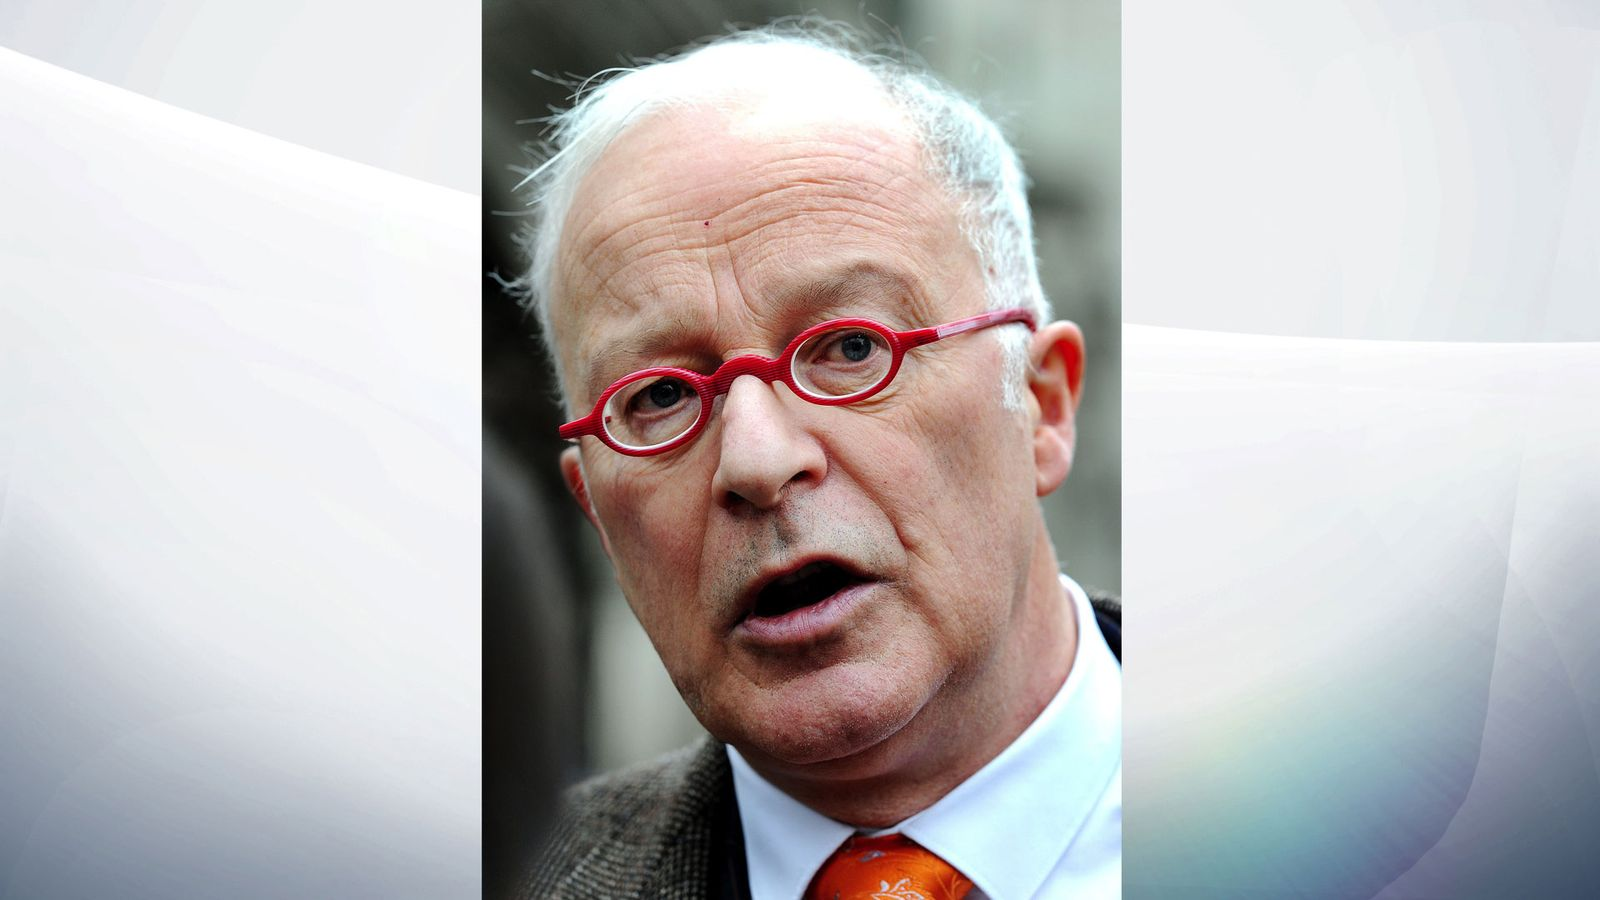 Human rights lawyer Phil Shiner